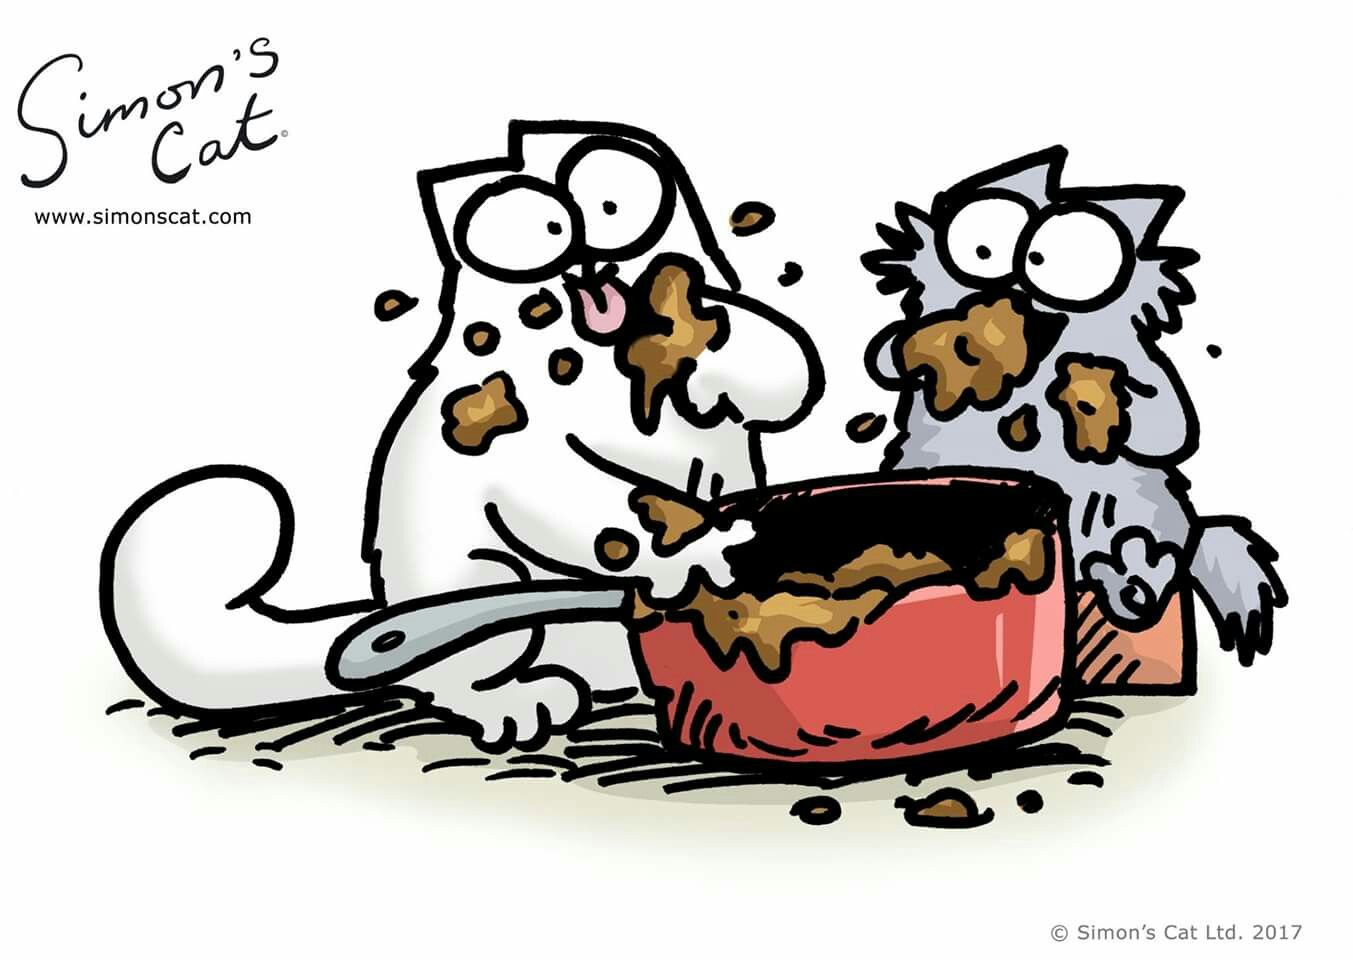 Pin by Hazel Deaner on Simon's Cat Simons cat, Funny